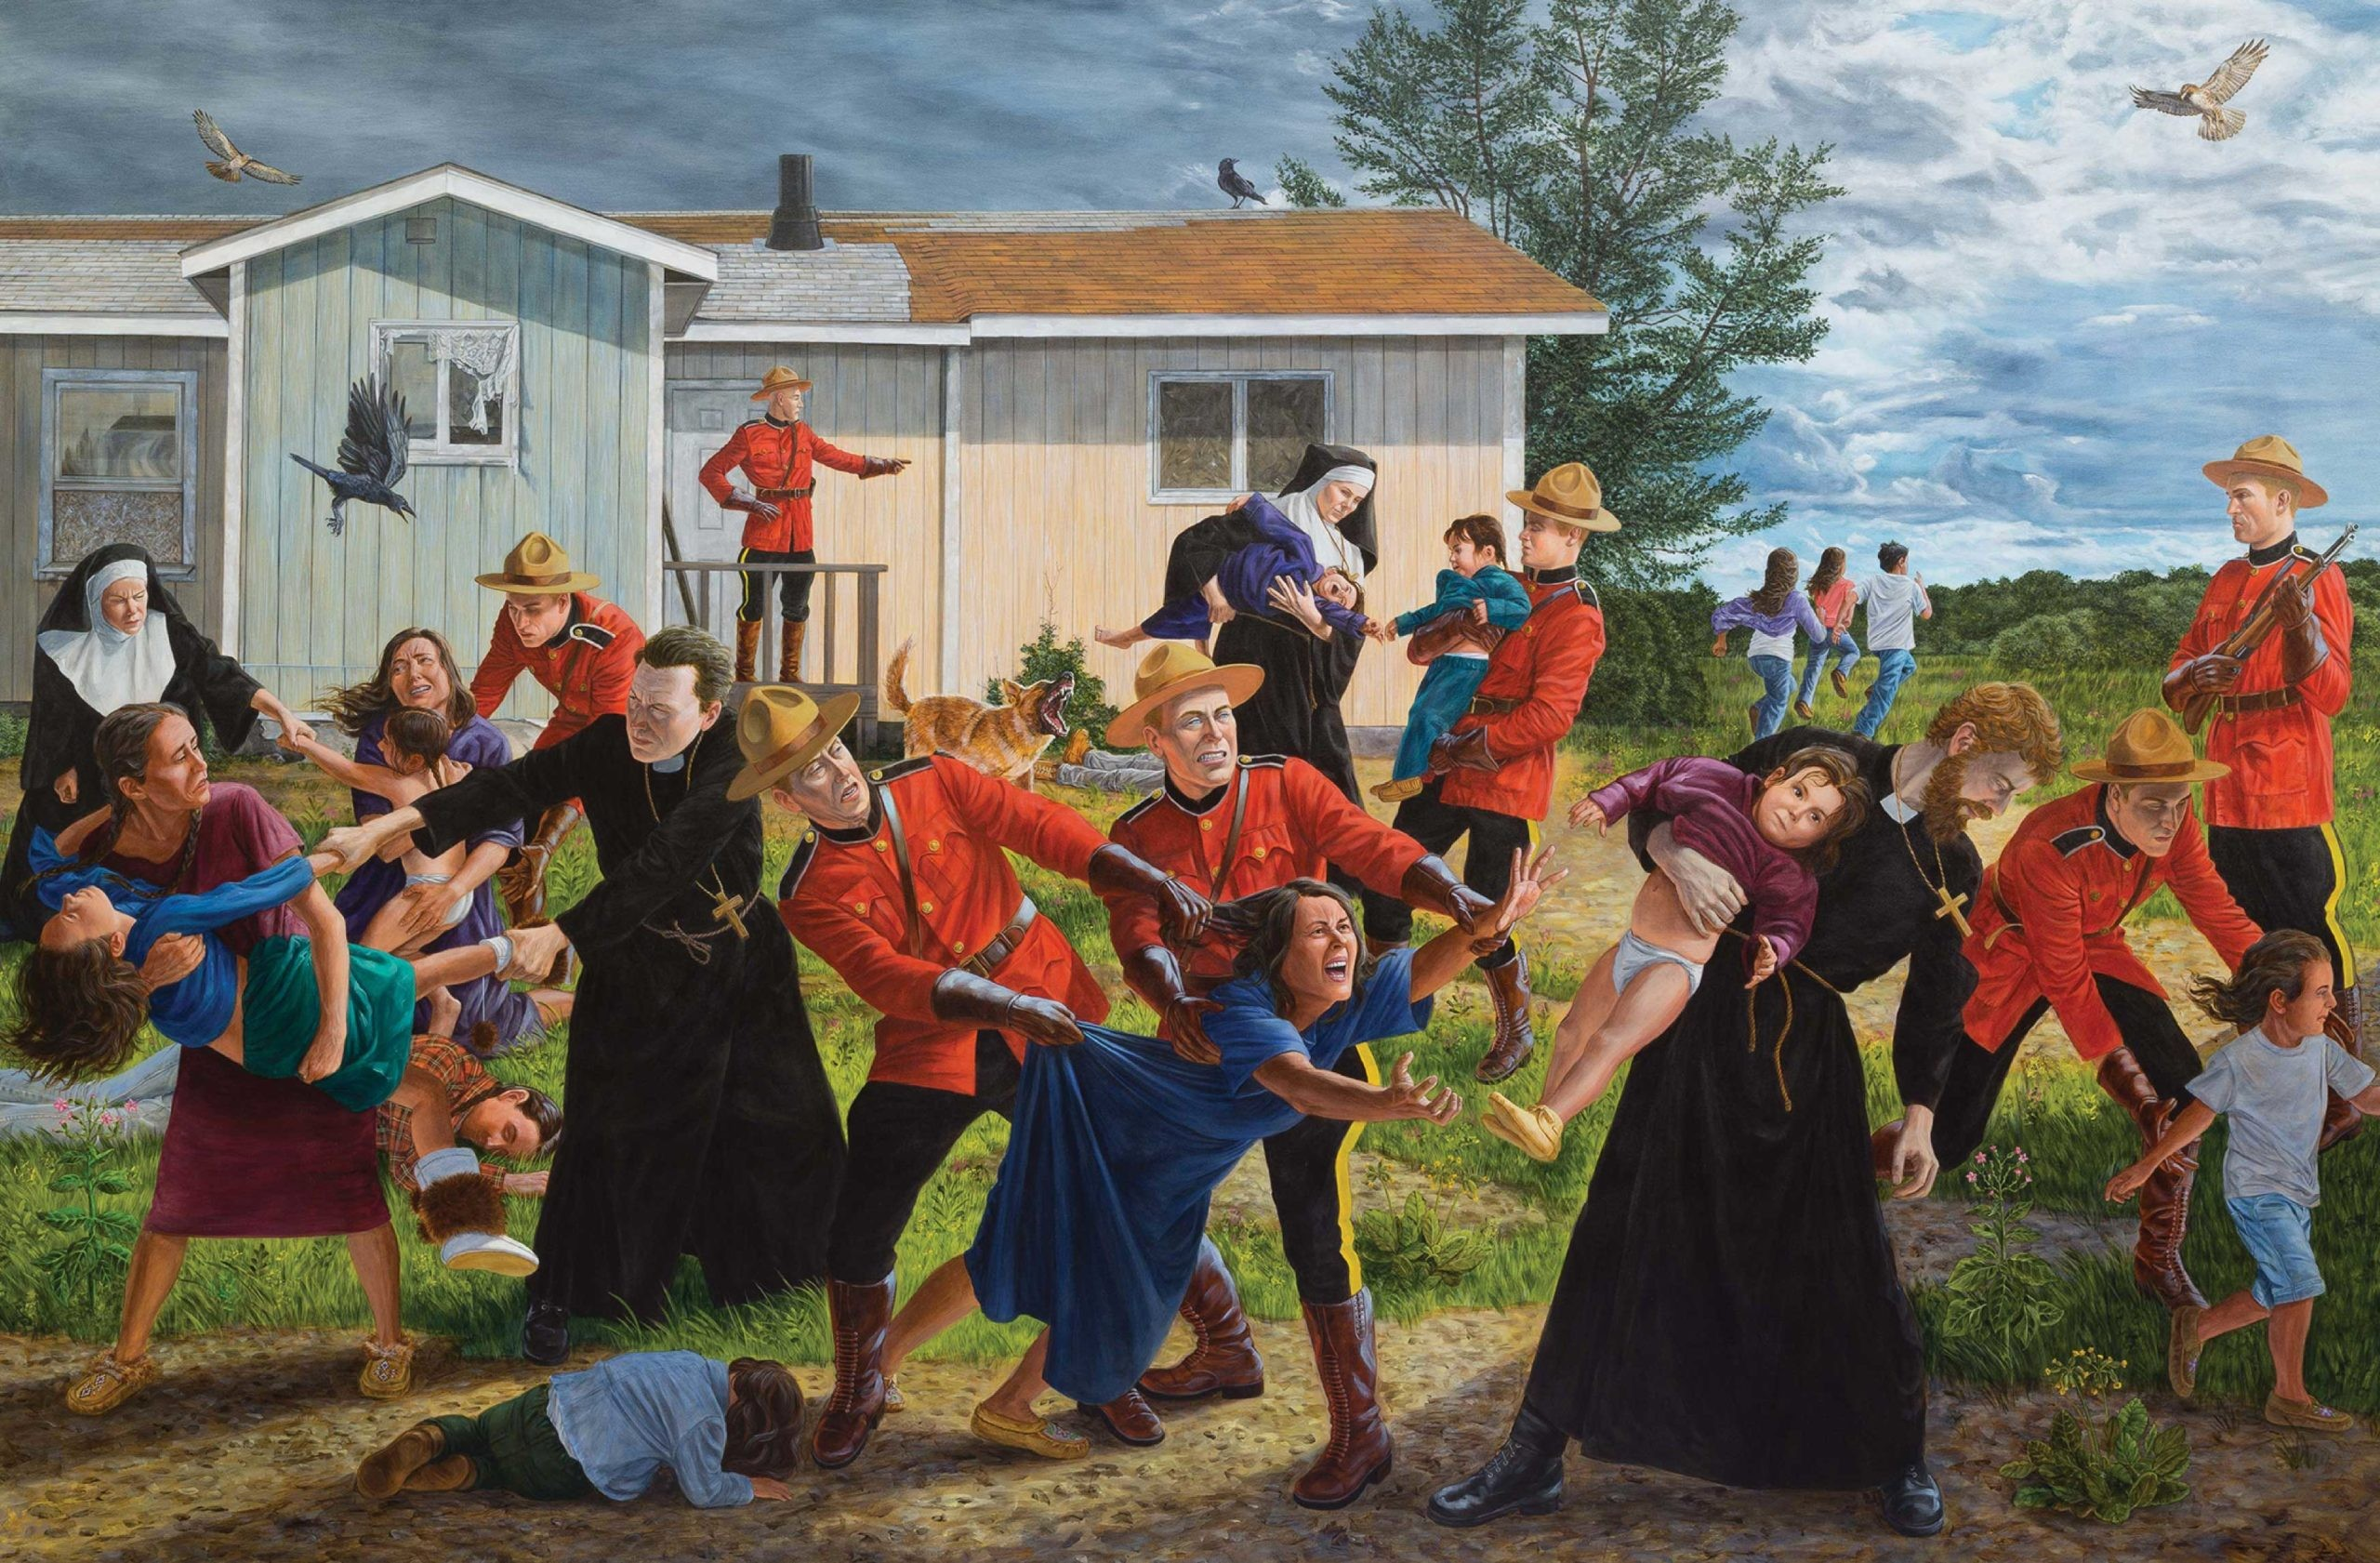 """""""The Scream"""", a painting by Cree artist Kent Monkman, depicts the history of Canada's residential school system and the despair it created"""